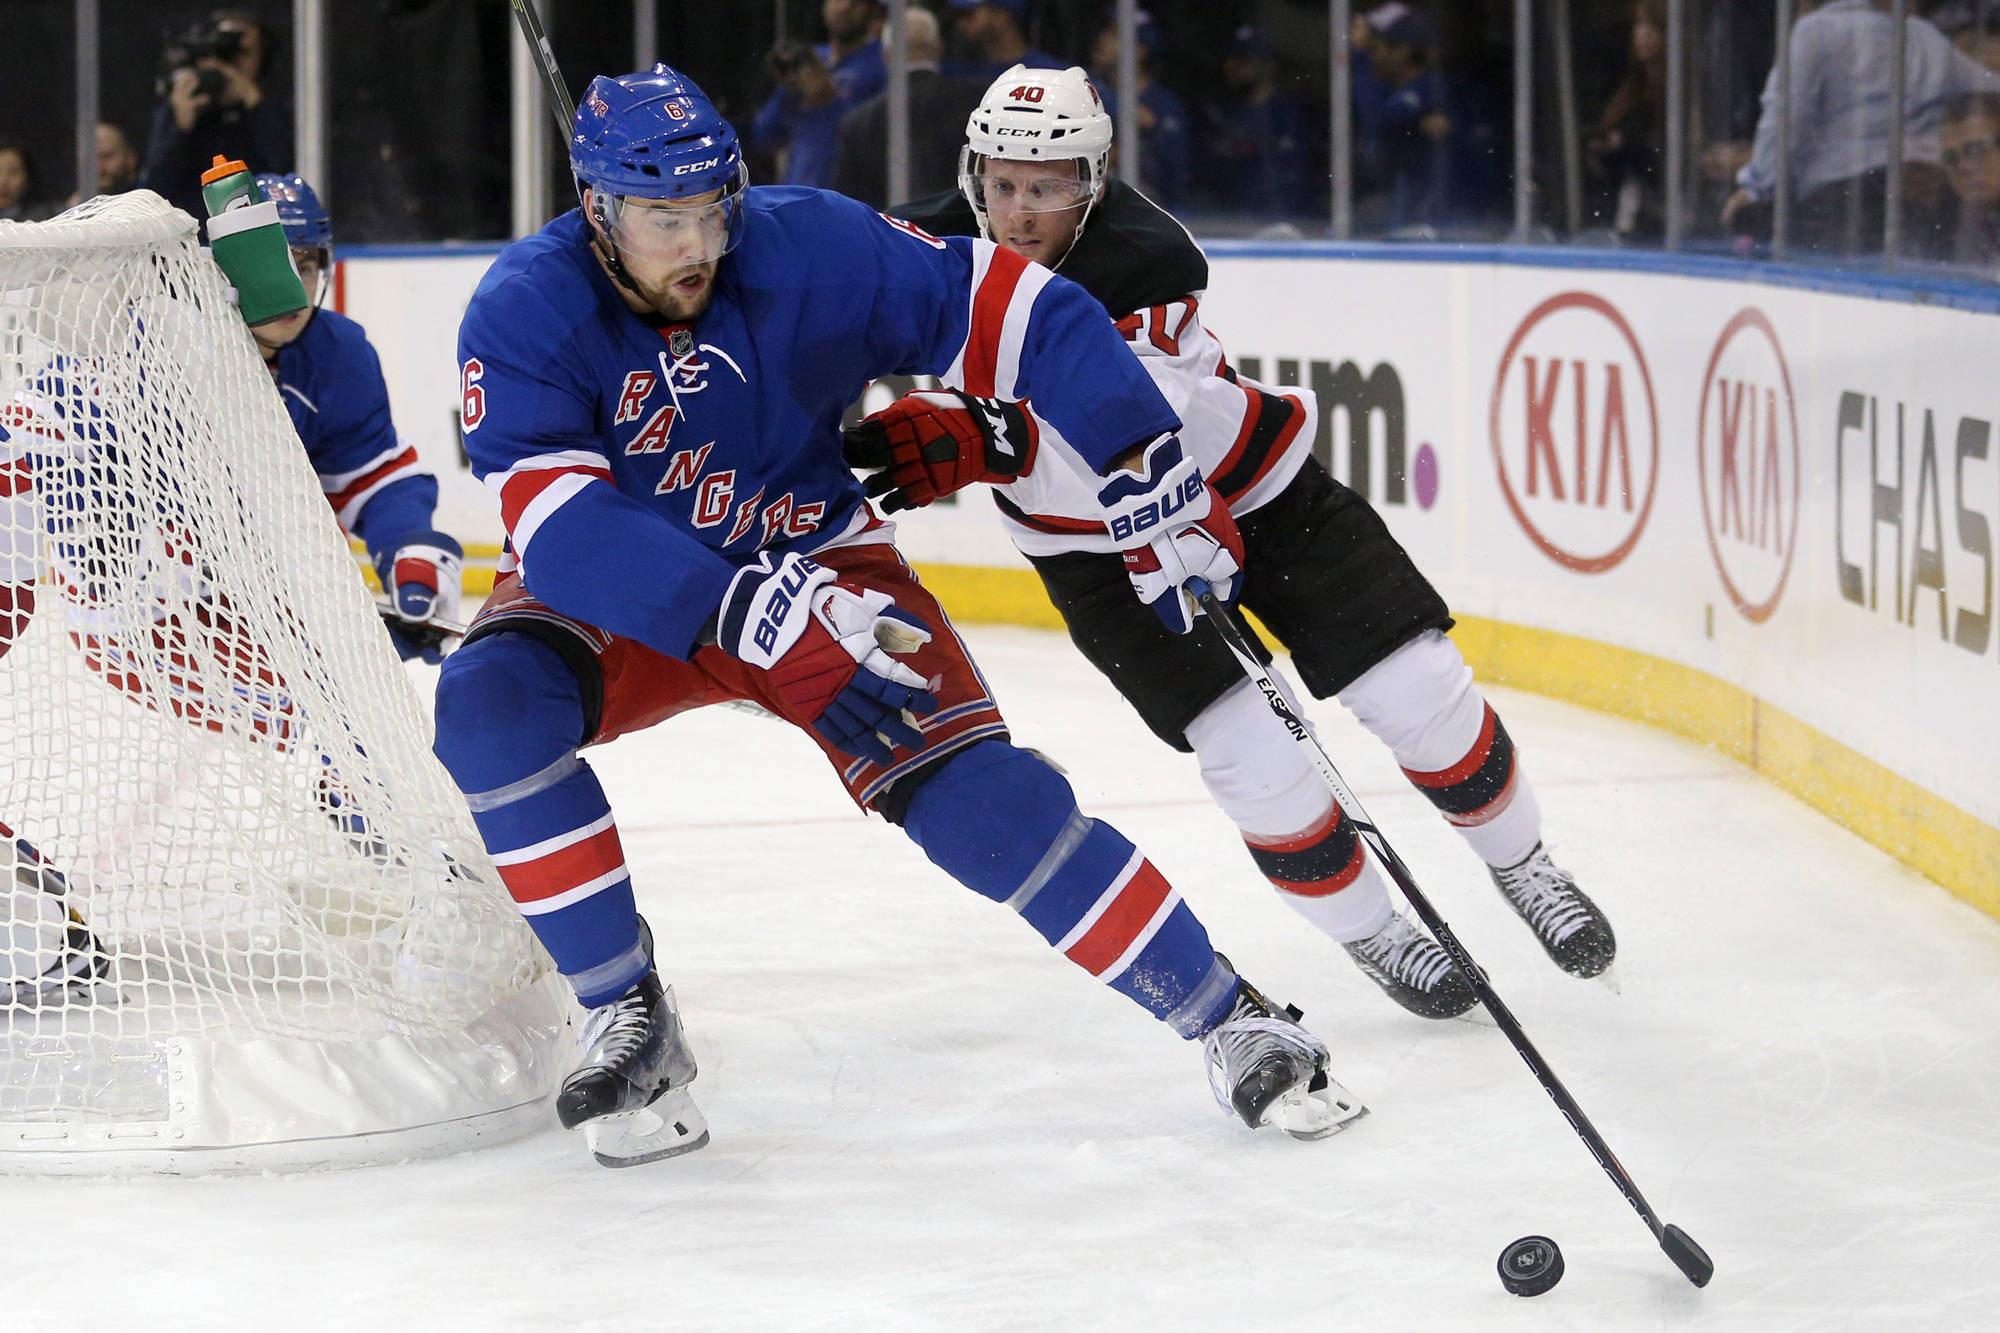 Dylan McIlrath Has to be on the Trade Block, Right?